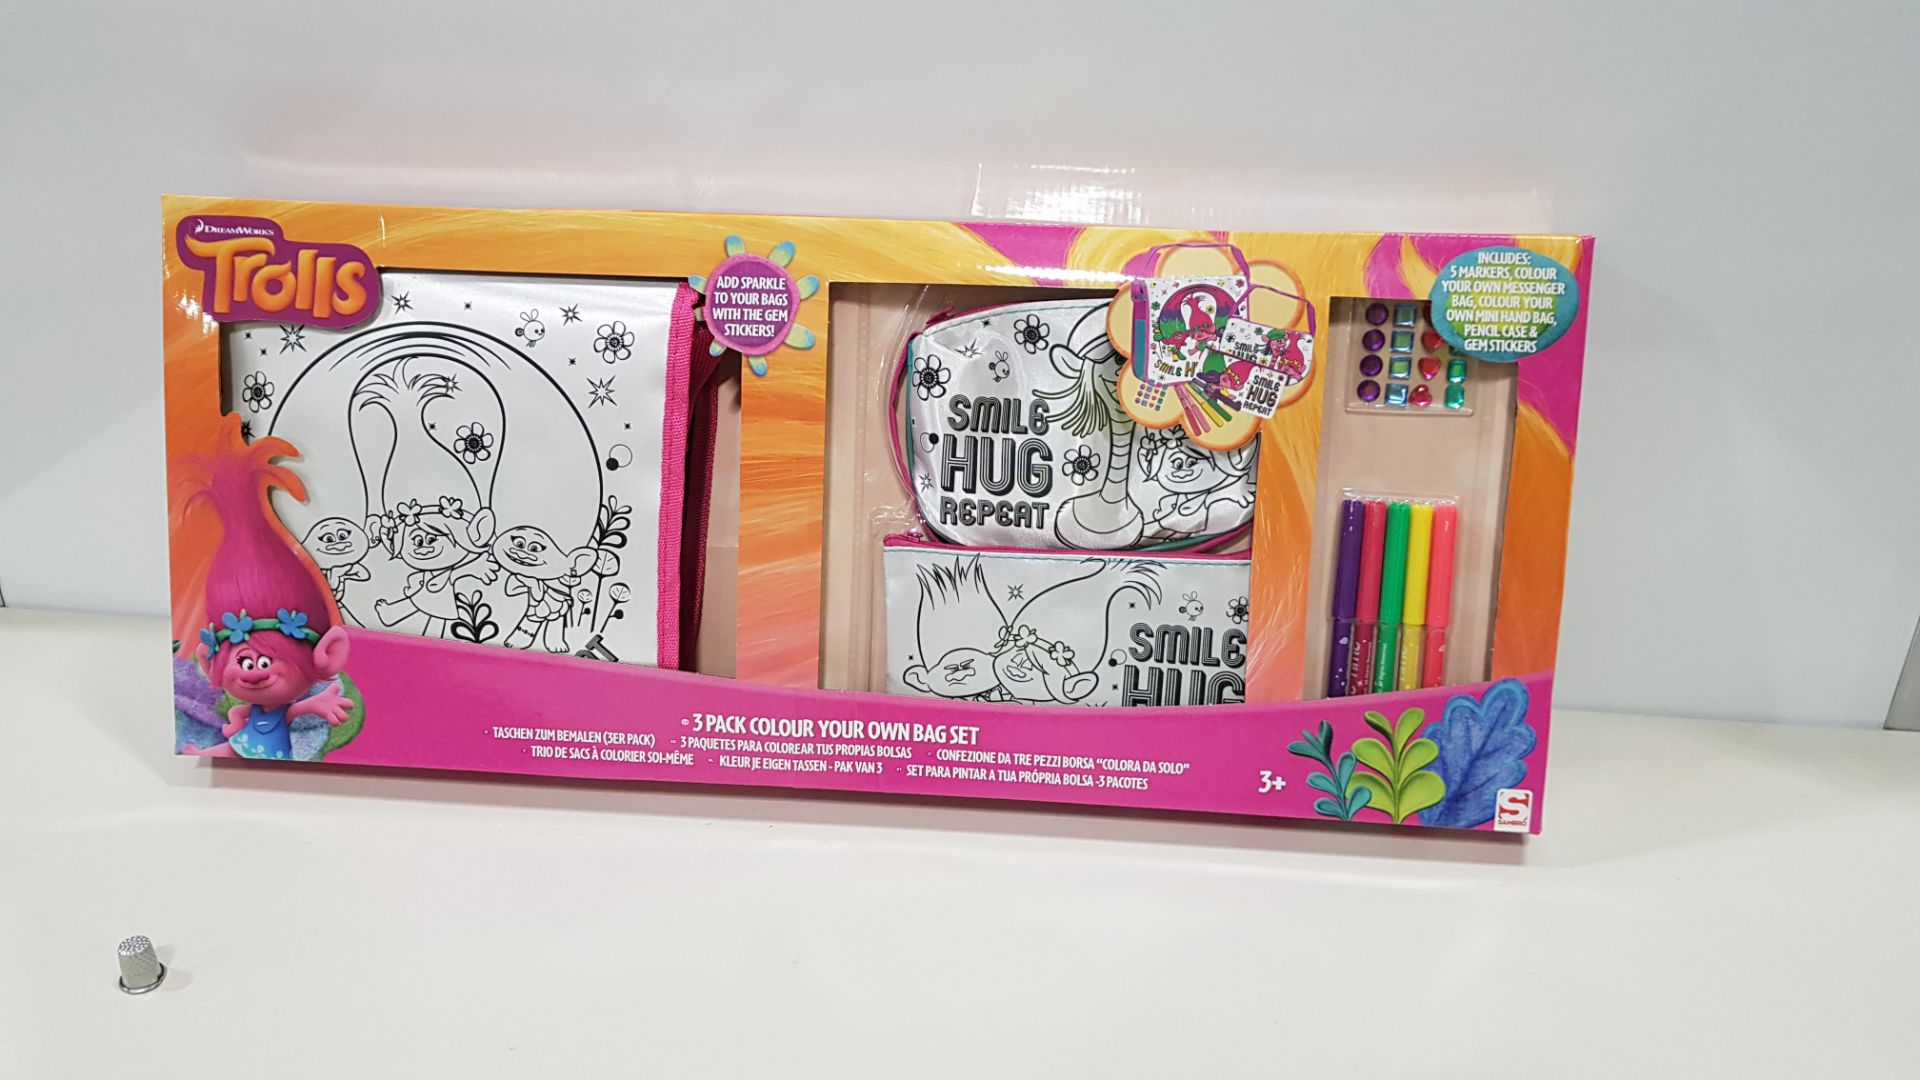 30 X BRAND NEW NICKELODEON TROLLS SET OF 3 COLOUR YOUR OWN BAGS INCLUDES MARKERS, YOUR OWN BAG, HAND